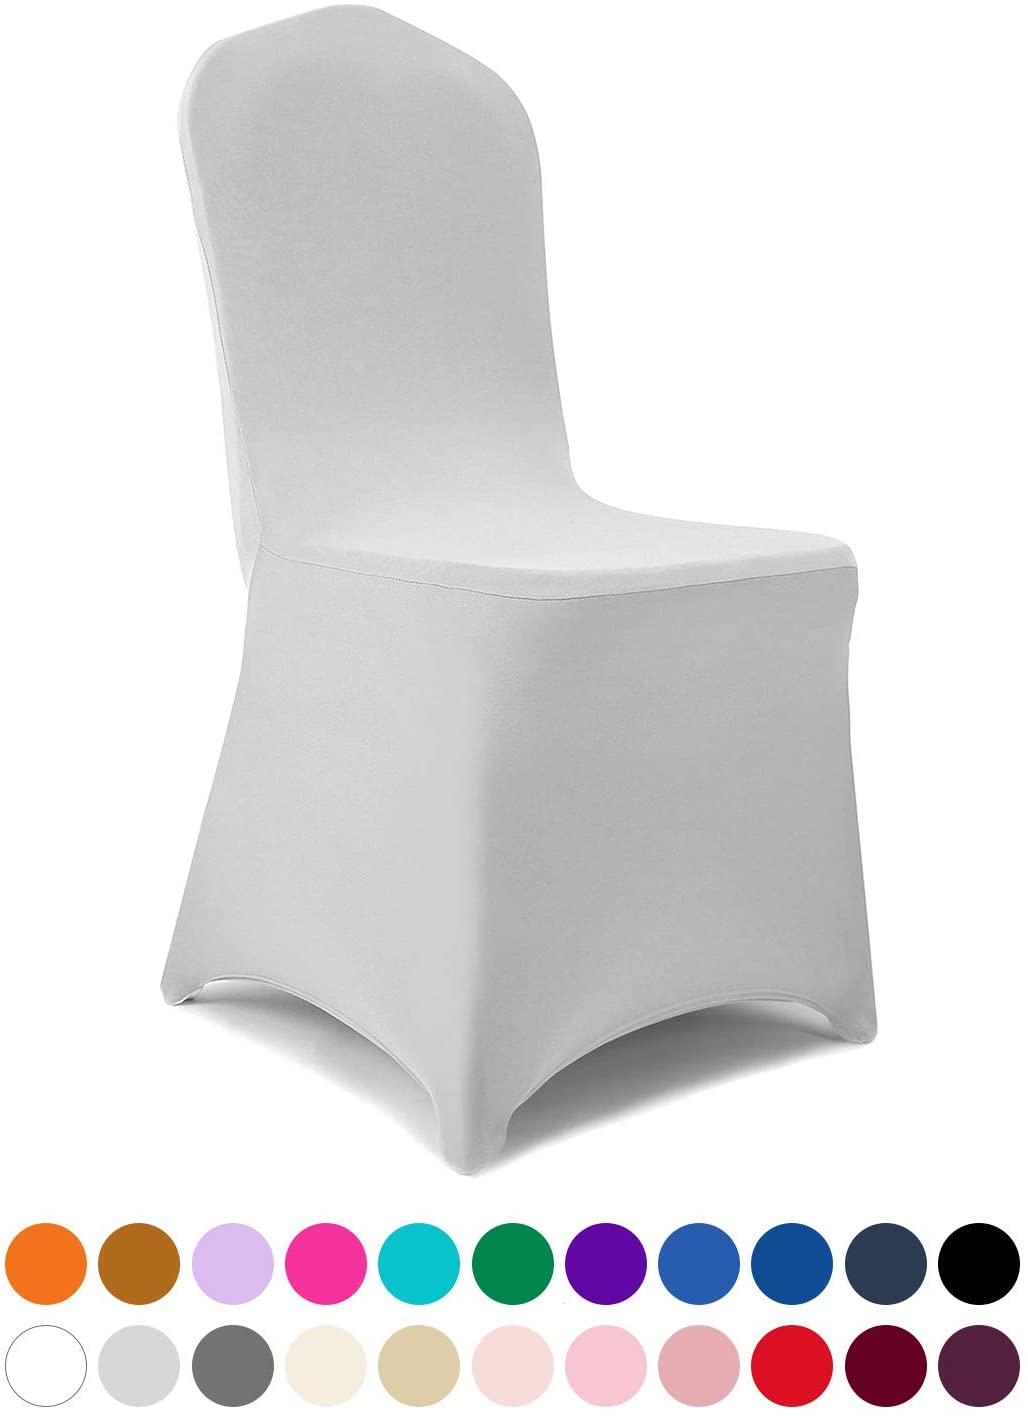 Peomeise 12pcs Stretch Spandex Chair Cover for Wedding Party Dining Banquet Event (Sliver, 12)